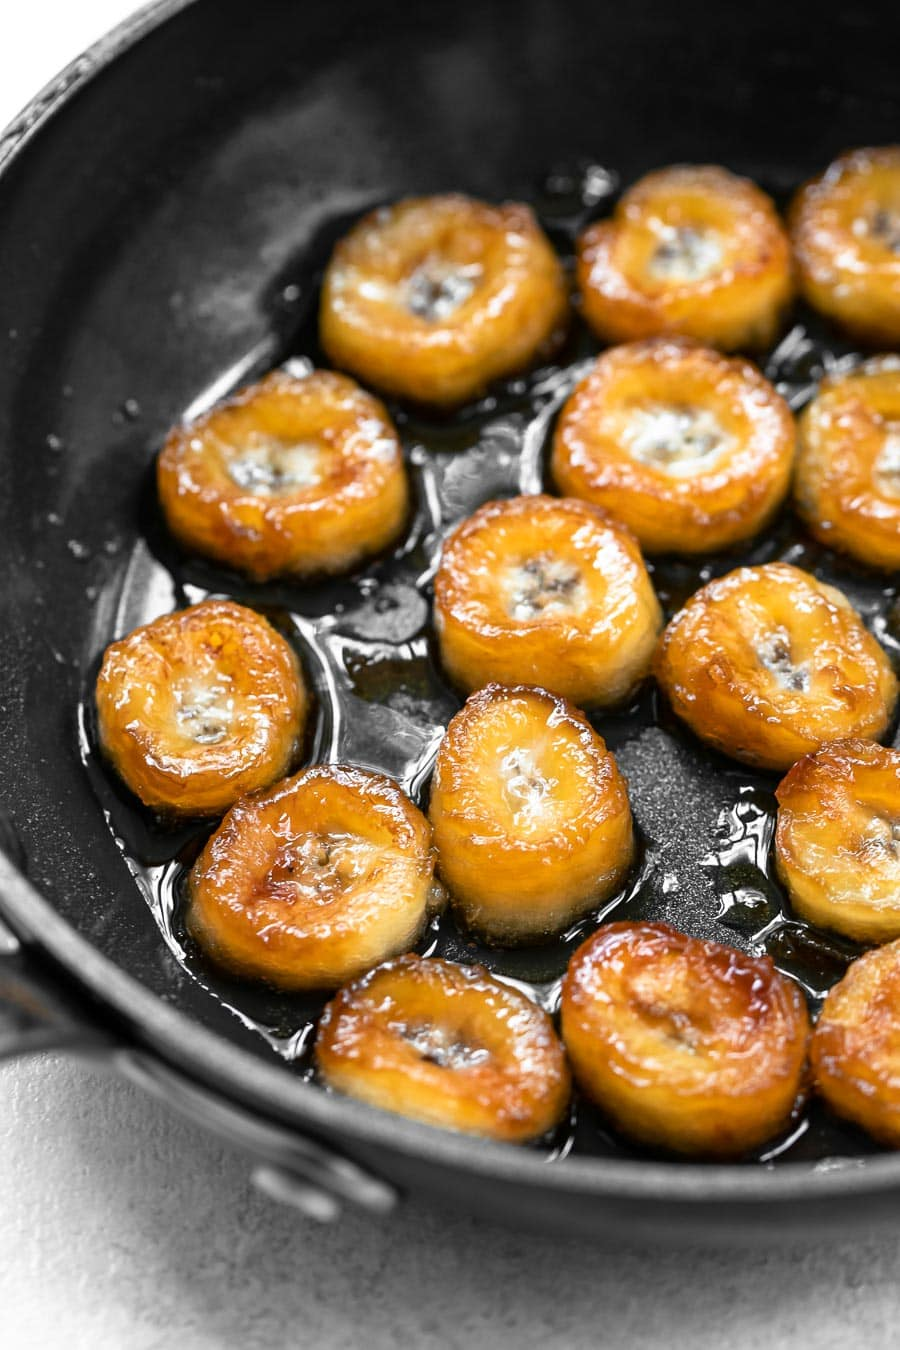 Caramelized bananas in a black pan.